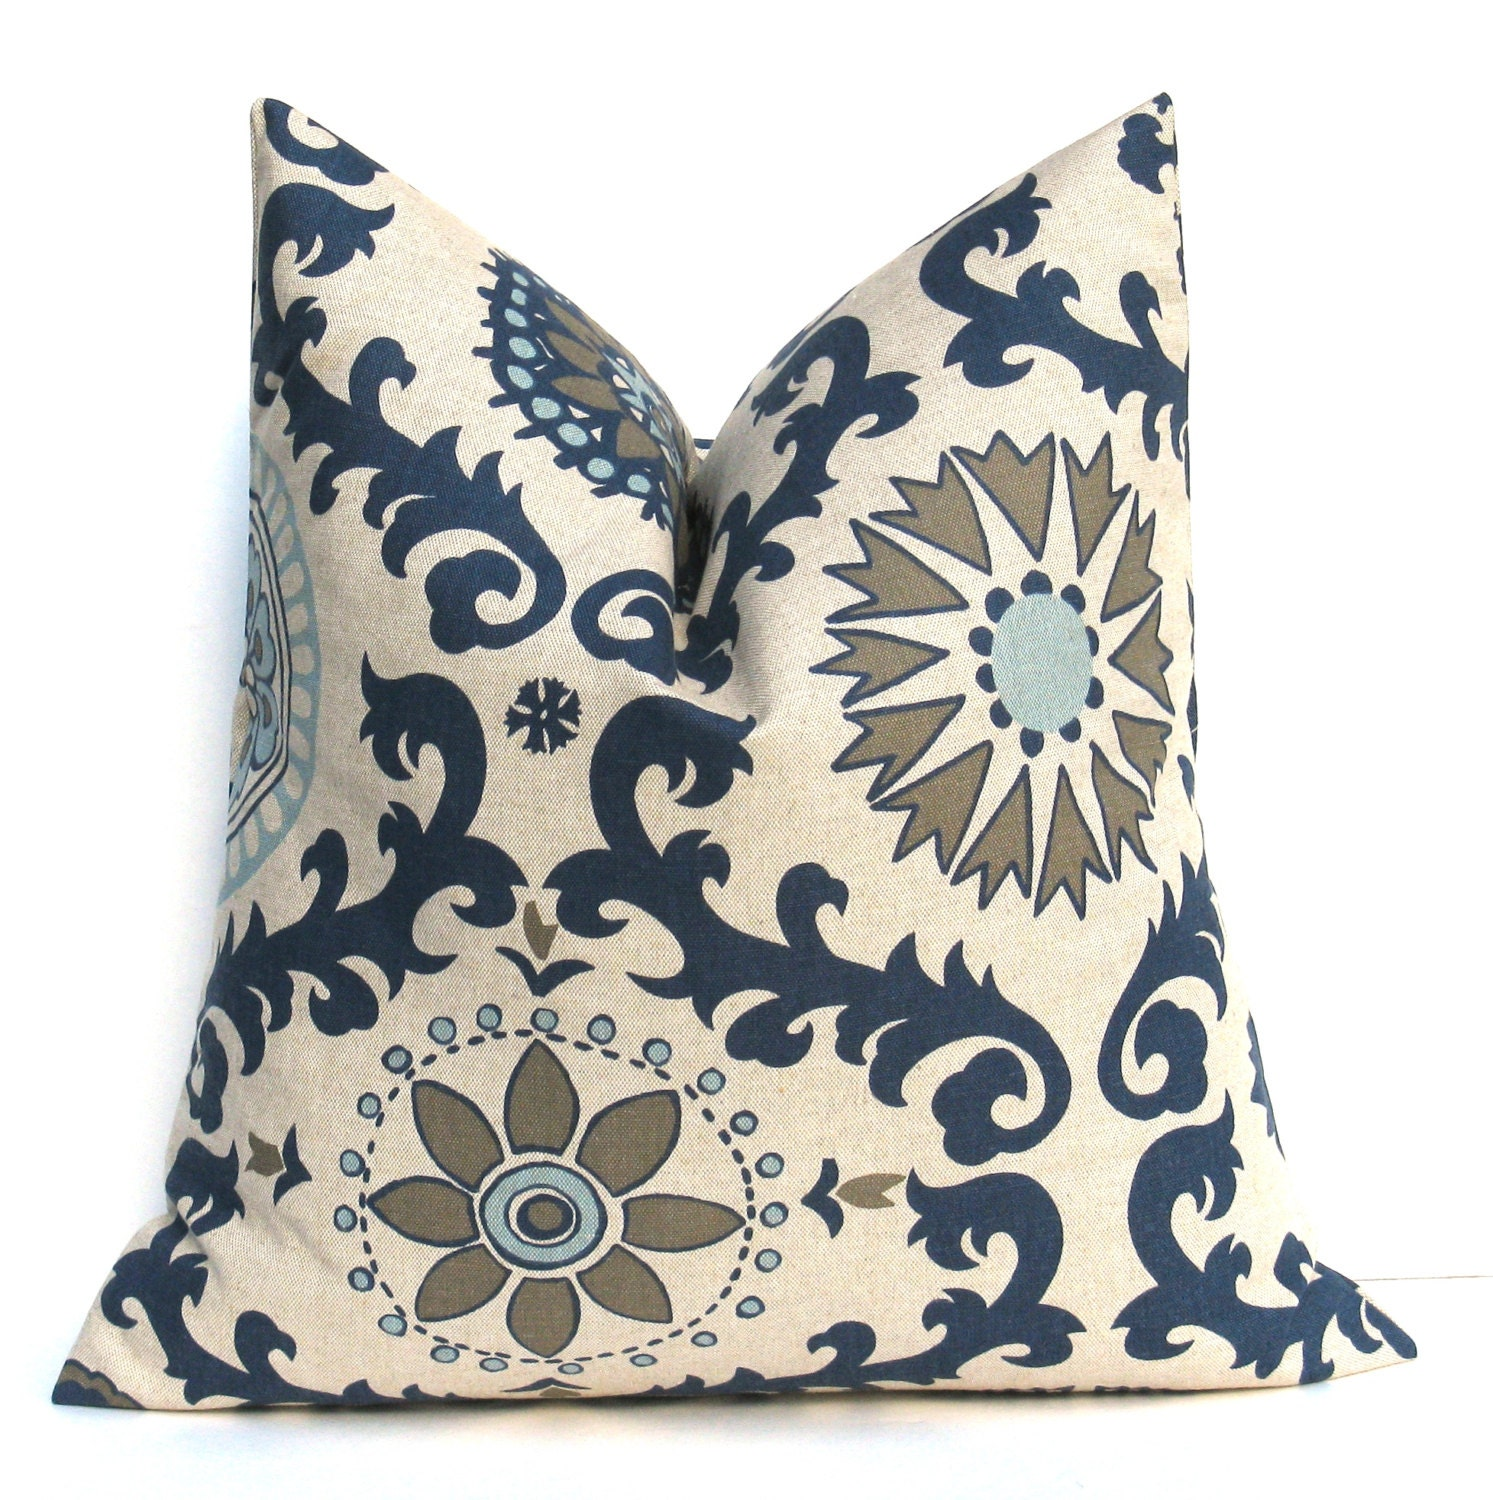 NAVY PILLOW Blue Tan Pillow Cover Decorative Pillow Covers